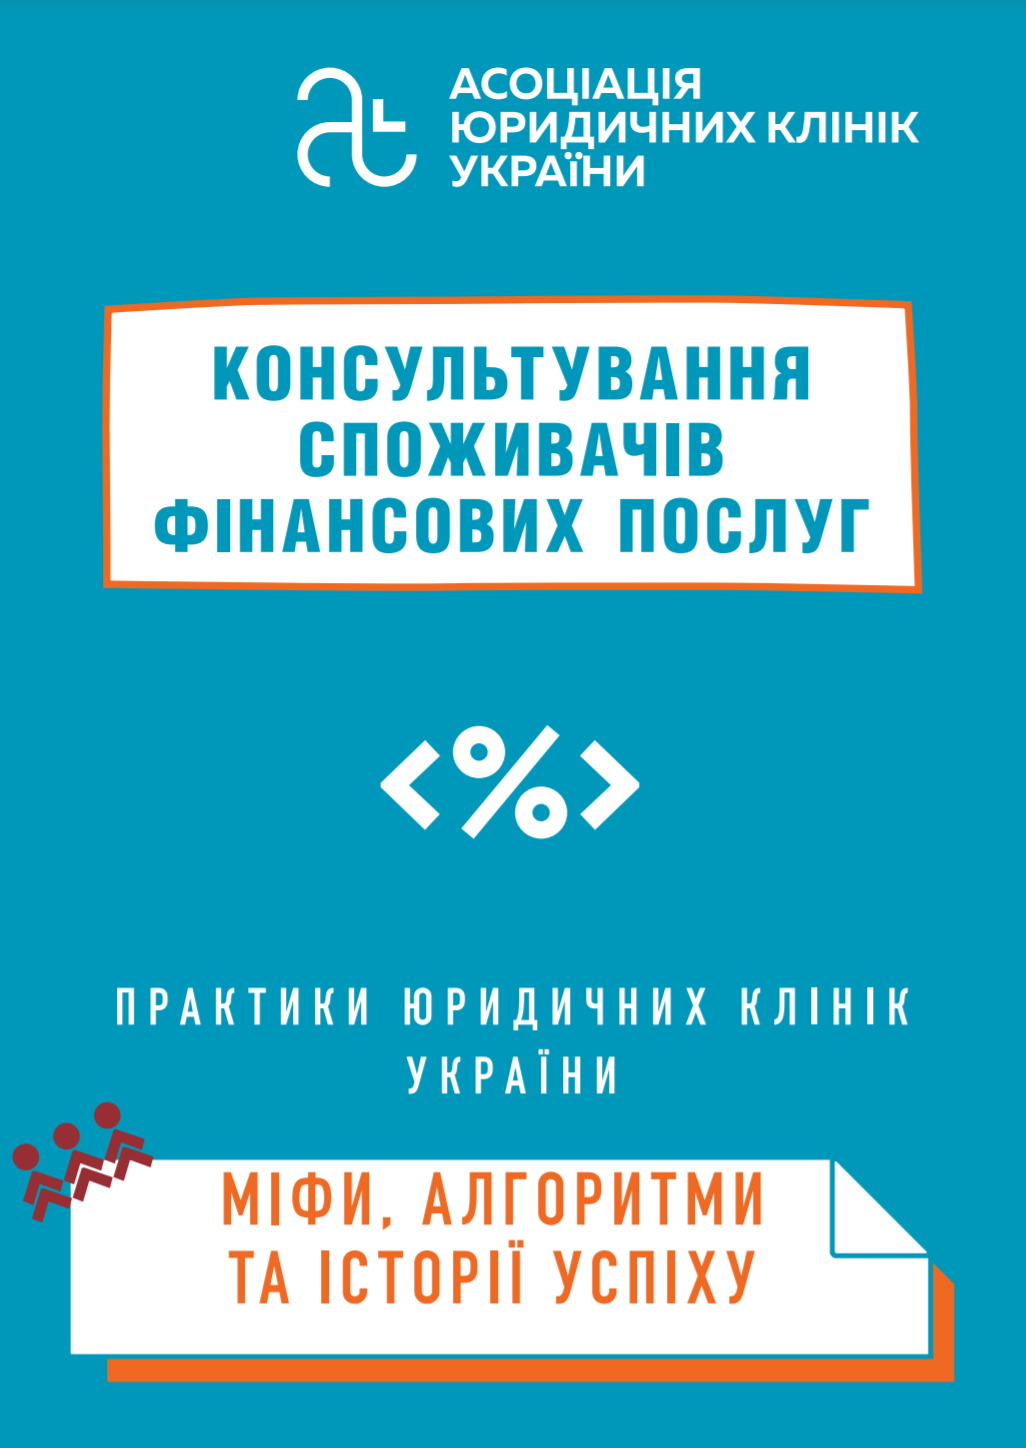 2020: Results of Legal Clinics in the Field of Financial Services